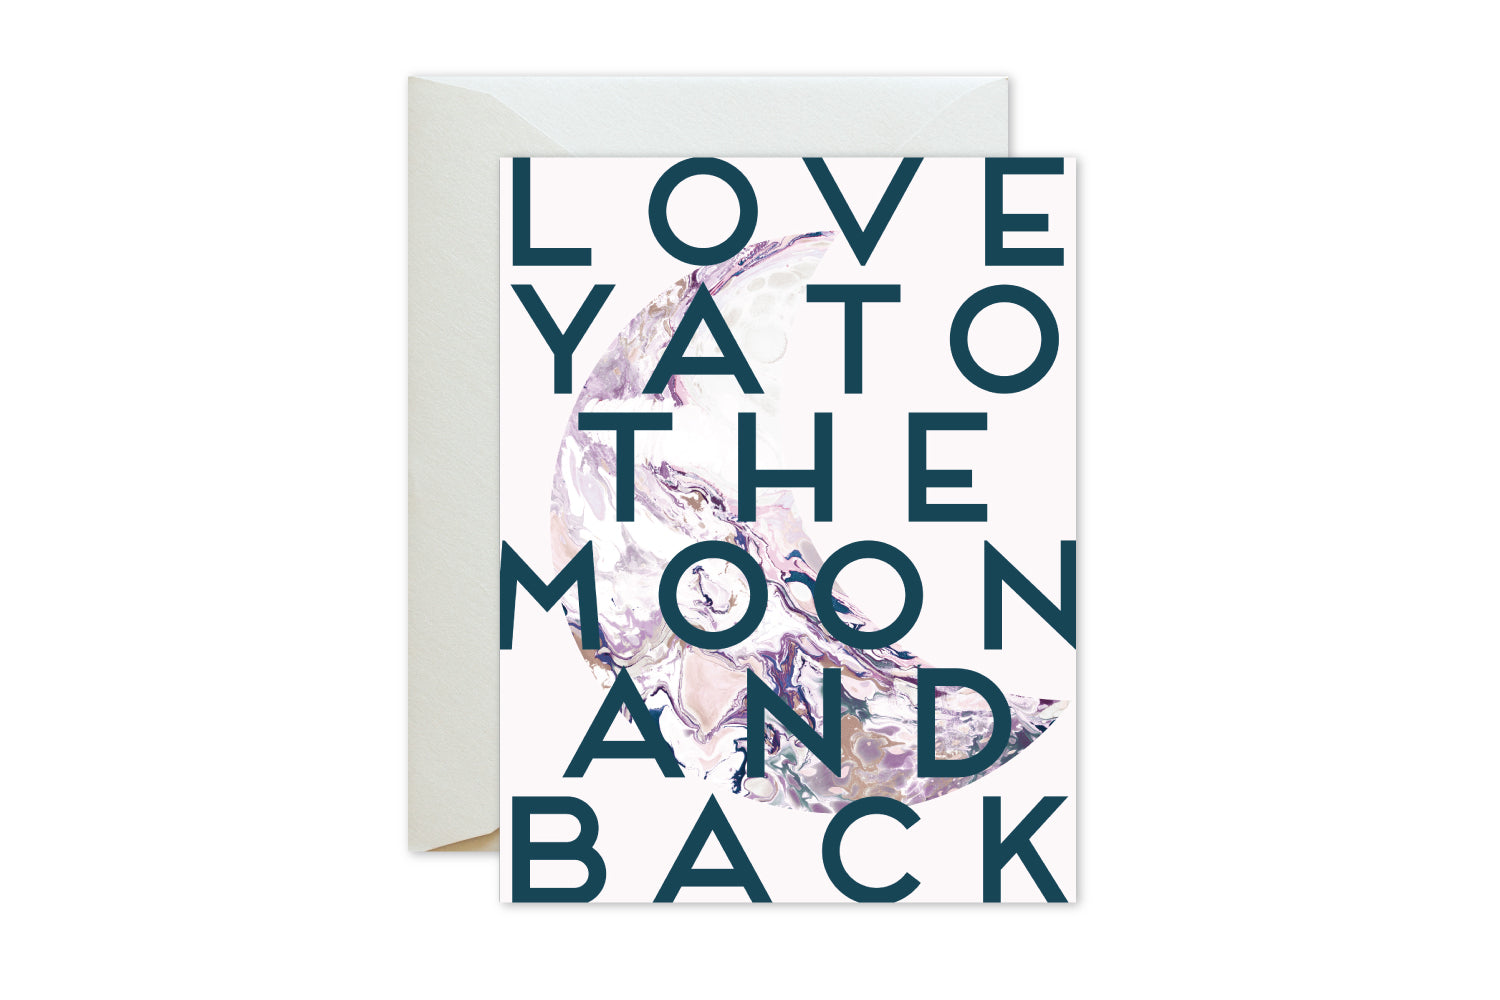 Love ya to the moon and back blush pink marble greeting card love ya to the moon and back greeting cards valentines day by pixelimpress m4hsunfo